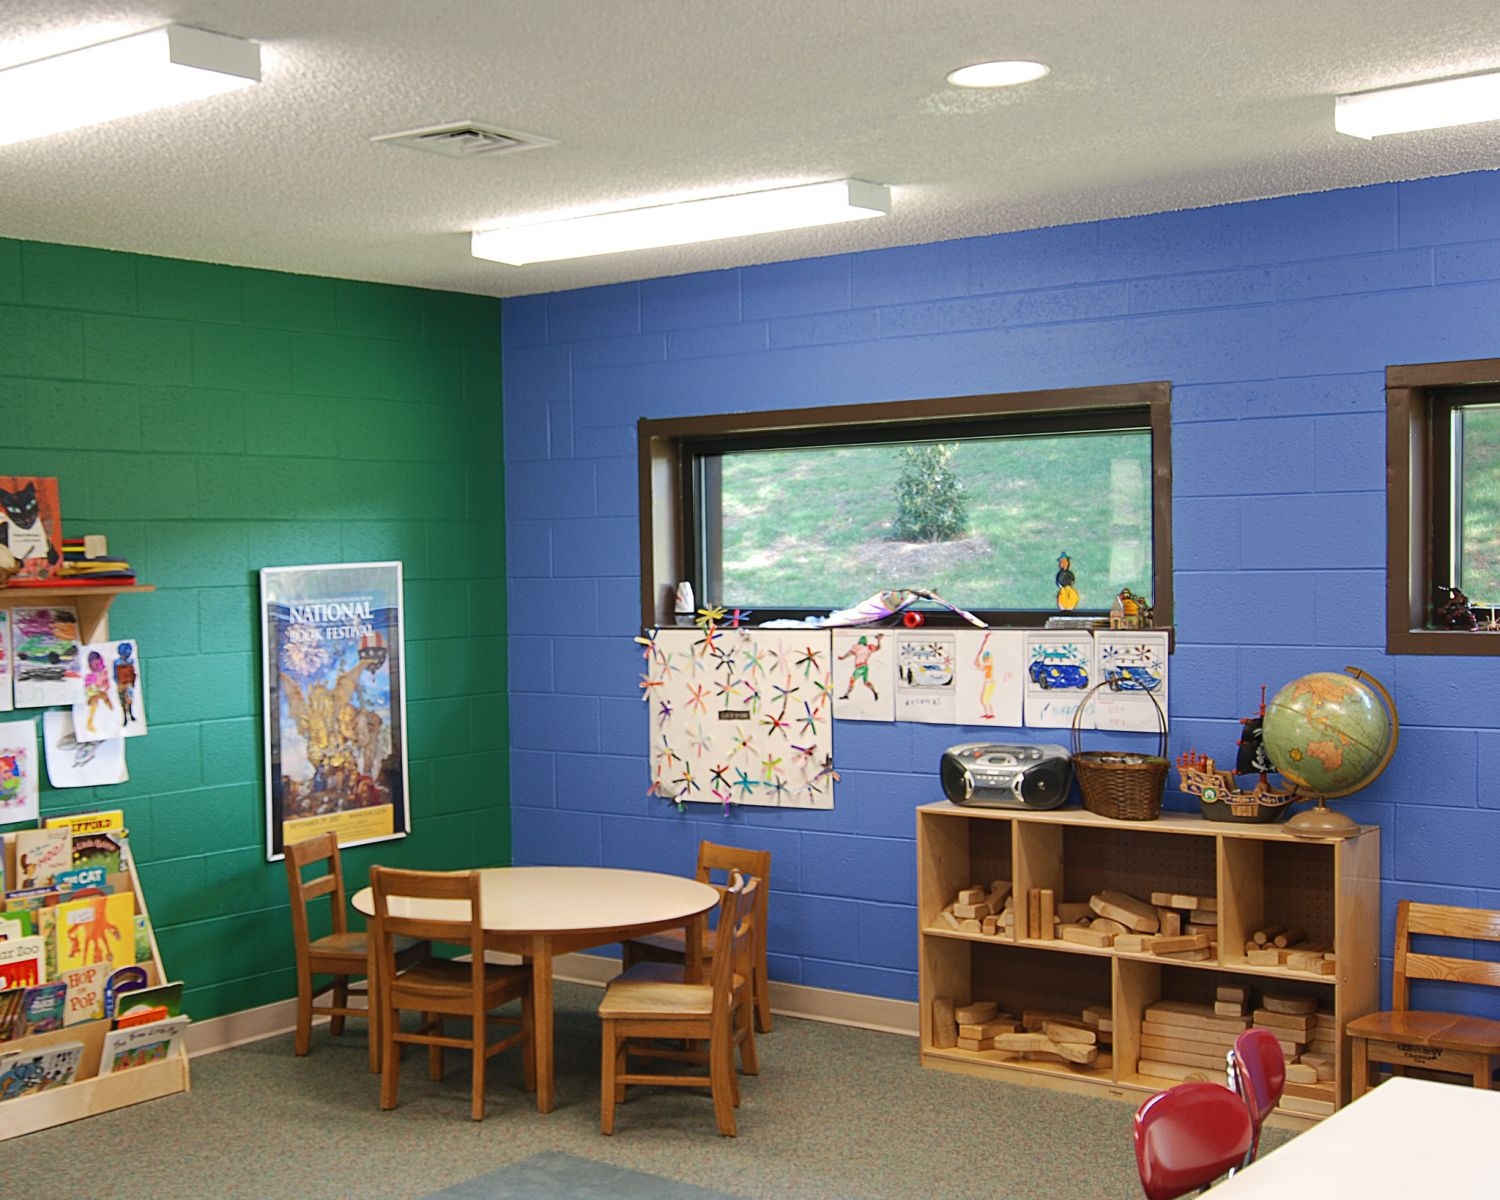 Design For A Preschool Classroom ~ Principles of universal design preschool through